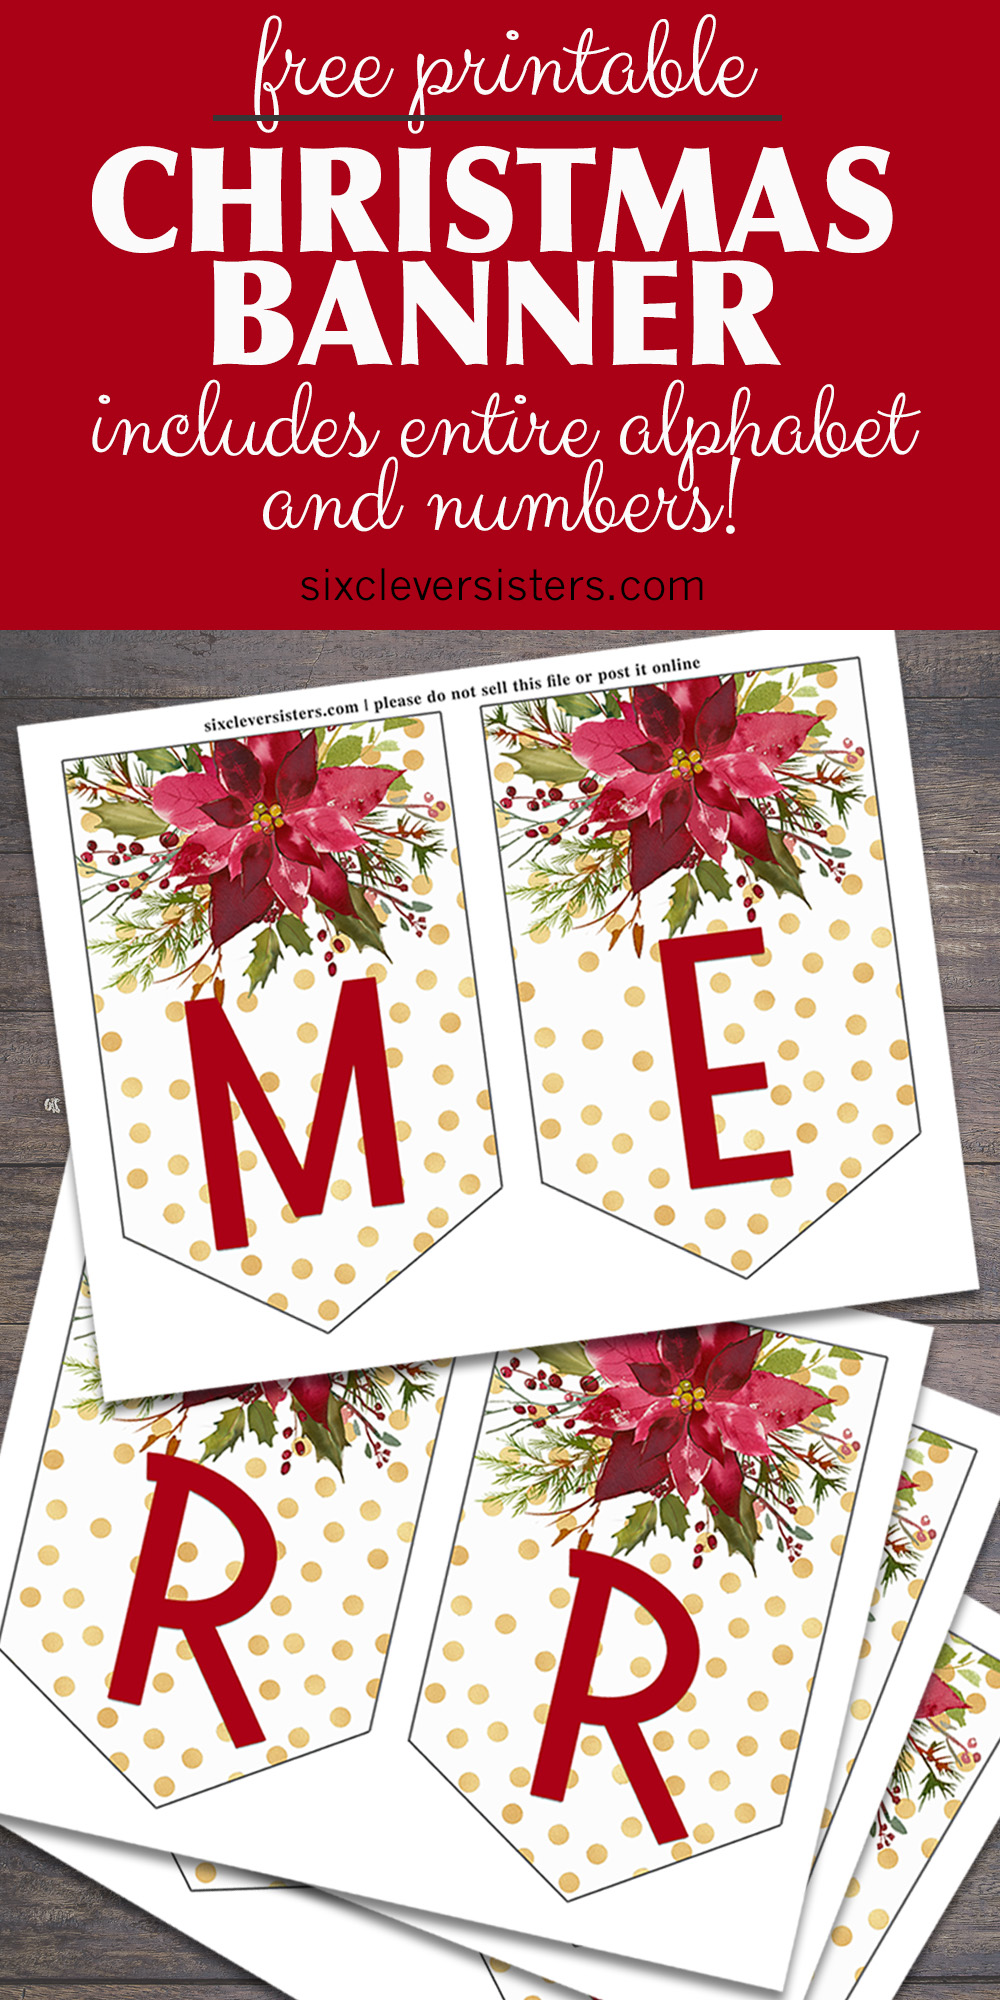 photo relating to Printable Christmas Letters referred to as Printable Xmas Banner - 6 Sensible Sisters